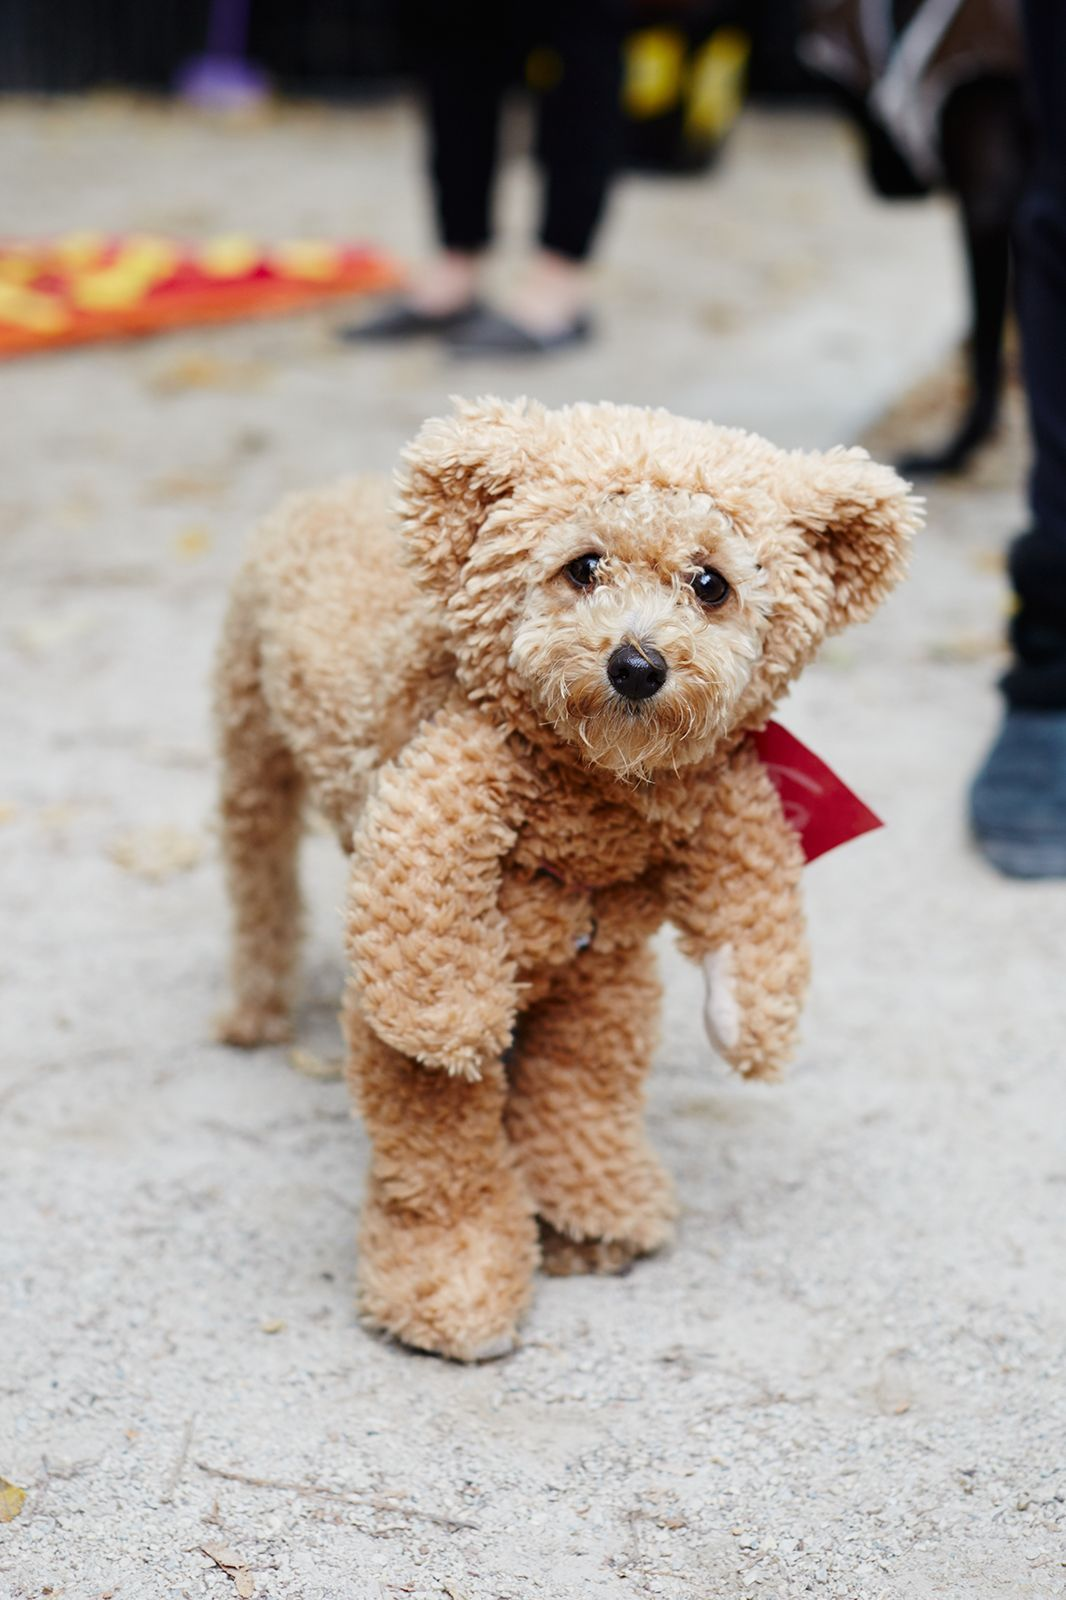 Adorable Puppy in Teddy Bear Costume Will Make Your Day